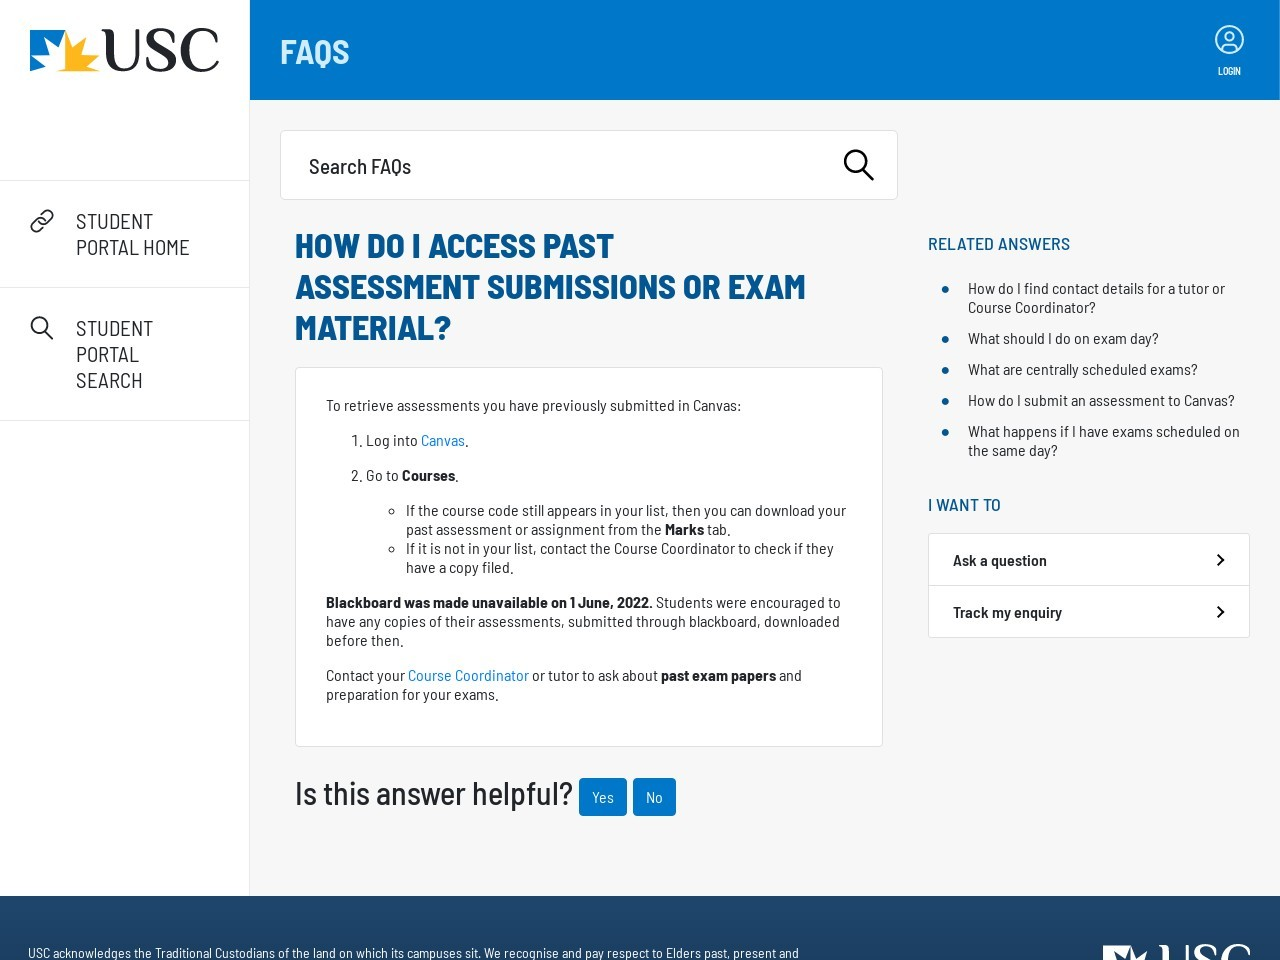 How can I retrieve my old assessments in Blackboard?